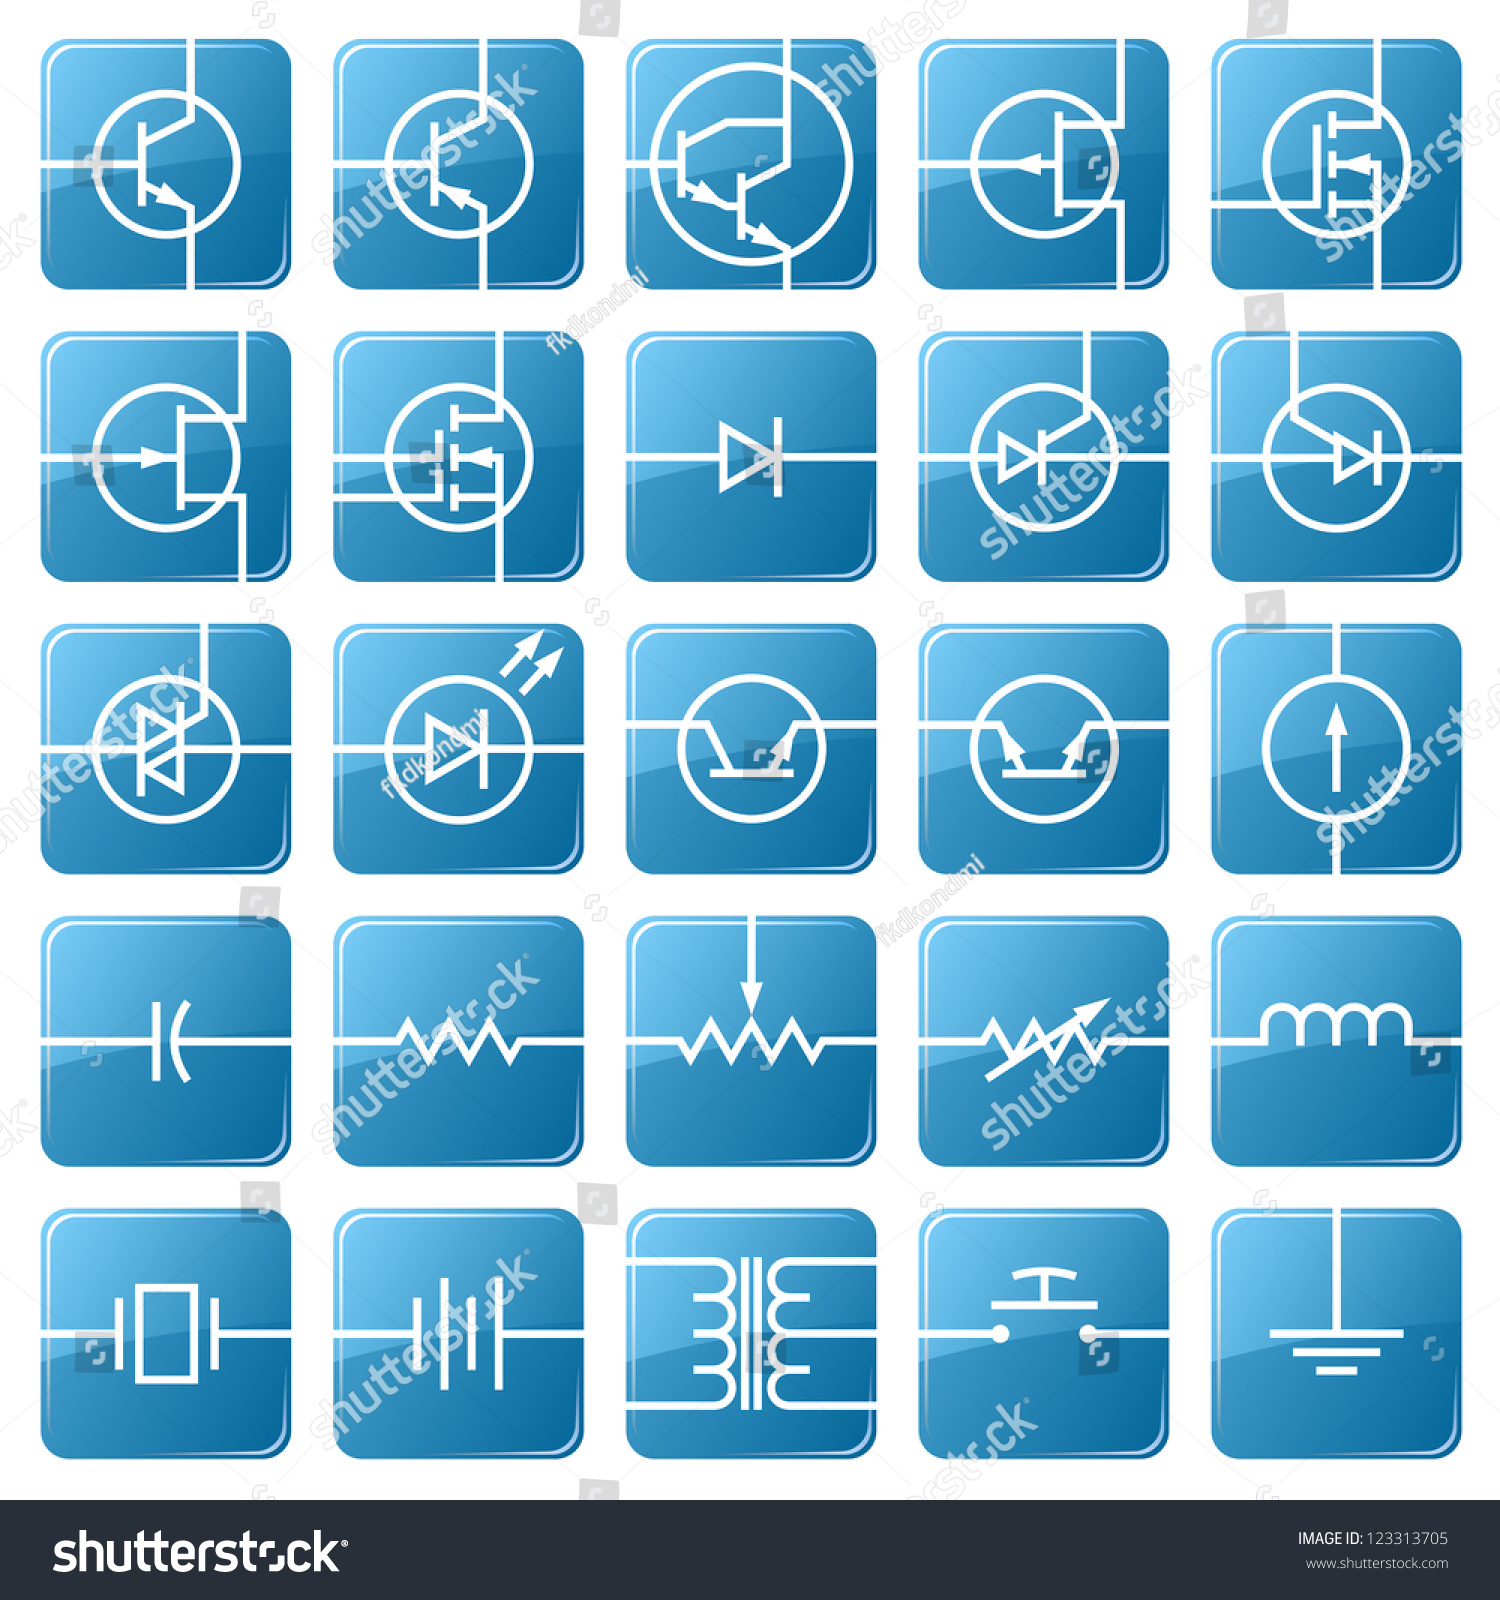 Symbols Electronic Components Shown Picture Stock Vector (Royalty ...